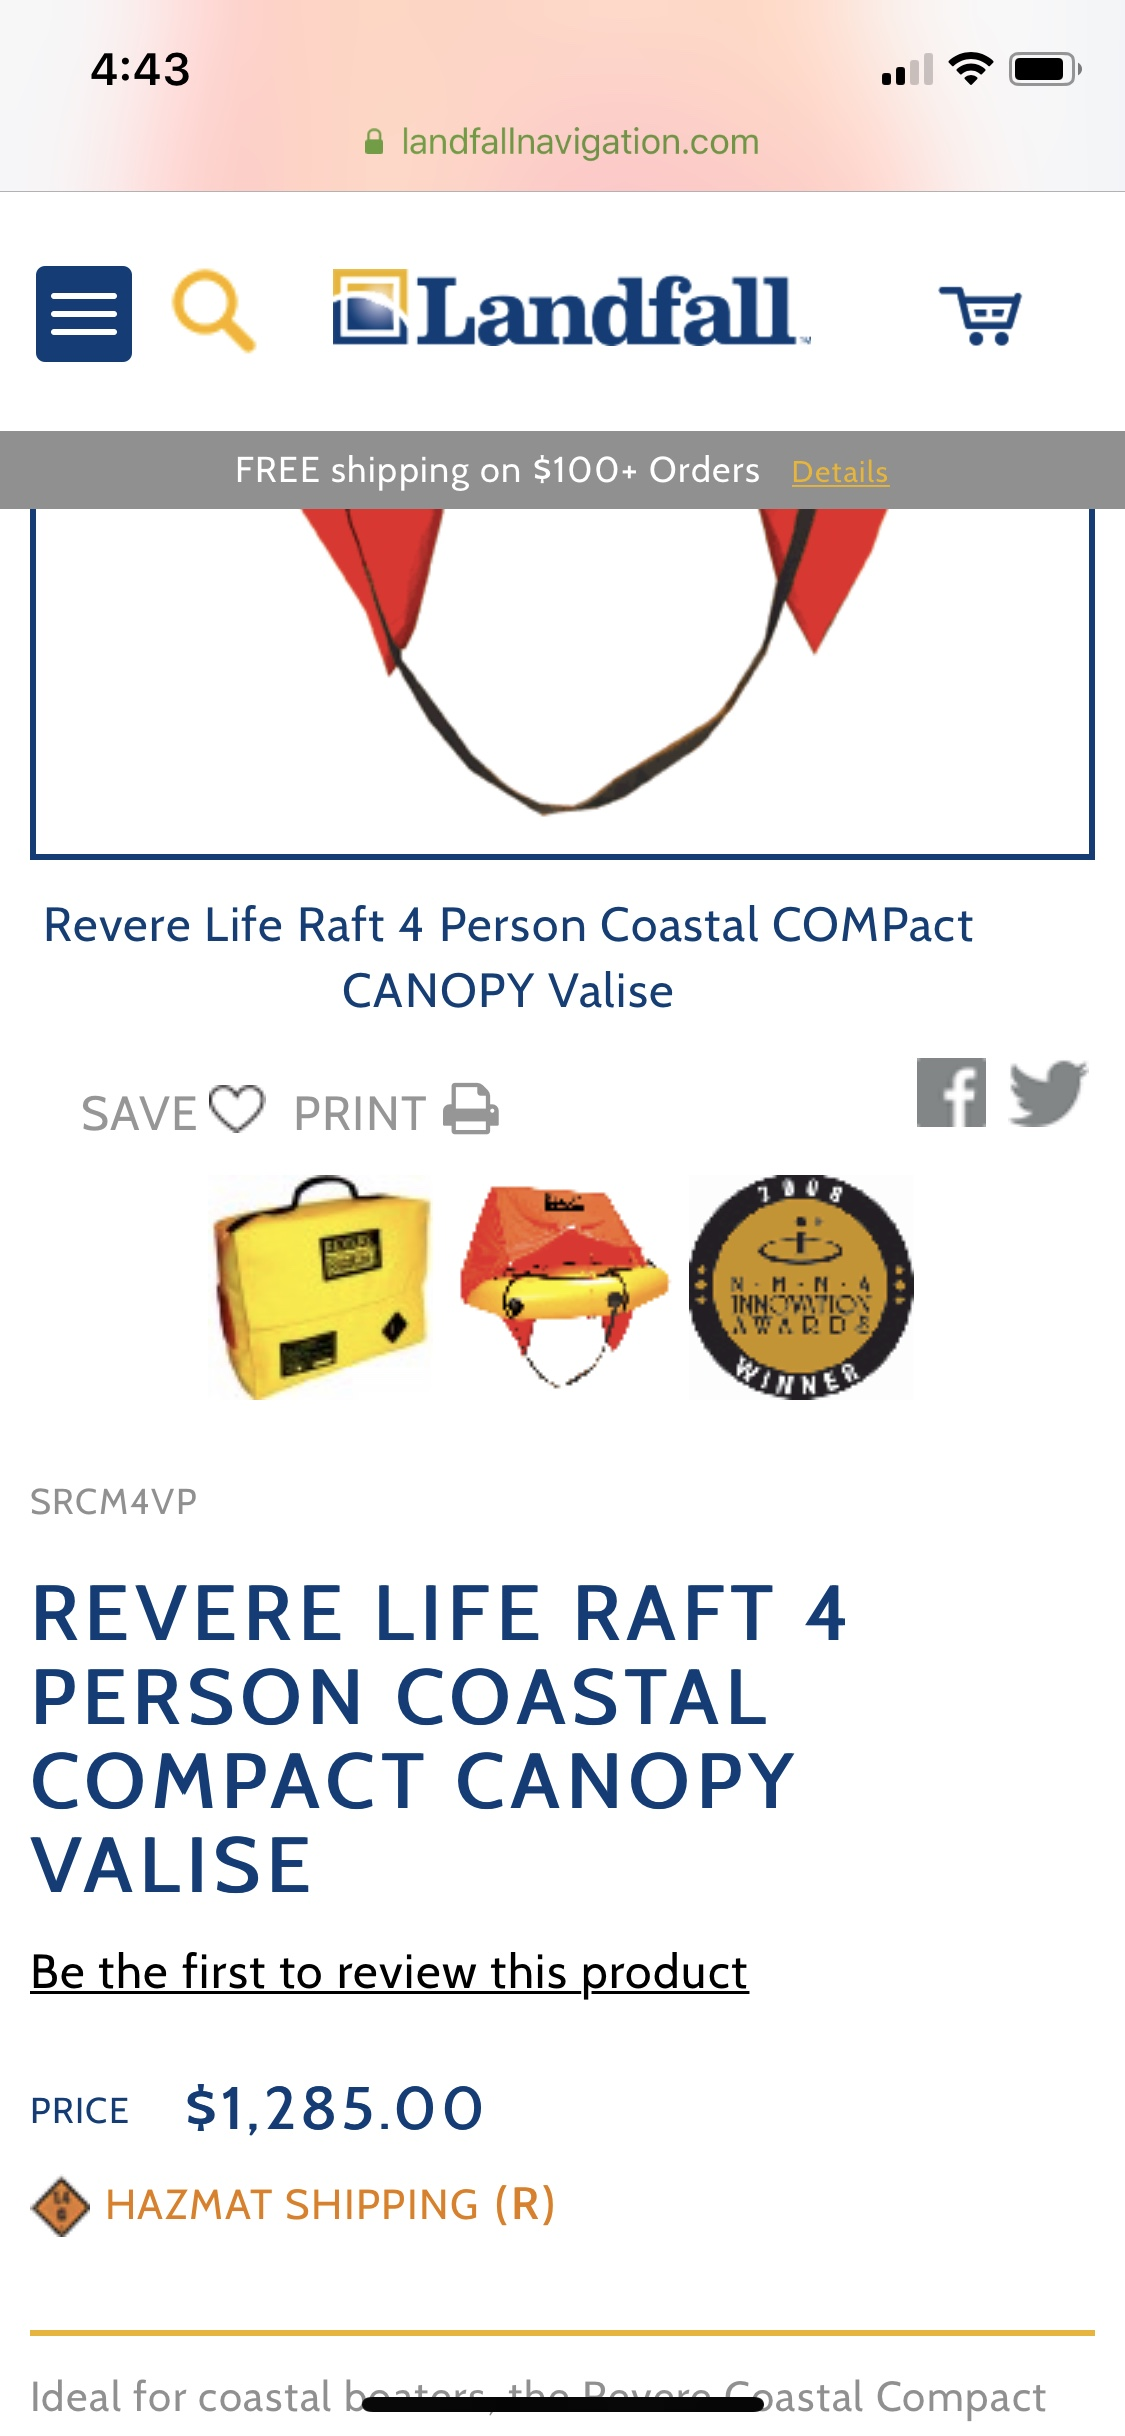 Revere coastal compact life raft 4 person - Classifieds